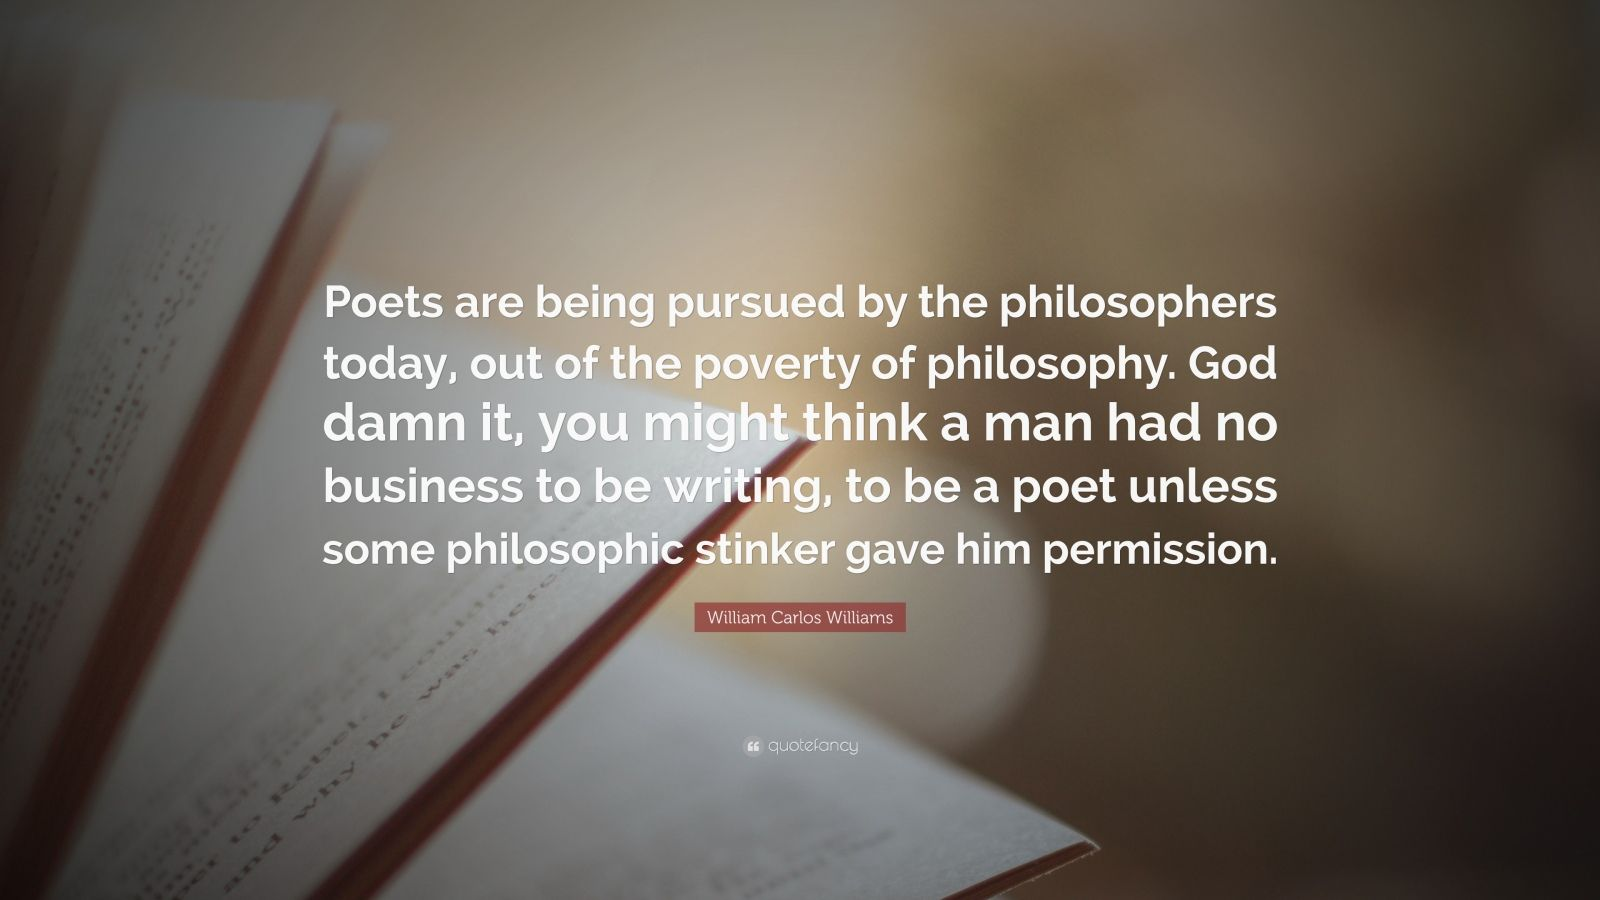 philosophy of man 4 essay Good writing is the product of proper training, much practice, and hard work the following remarks, though they will not guarantee a top quality paper, should.